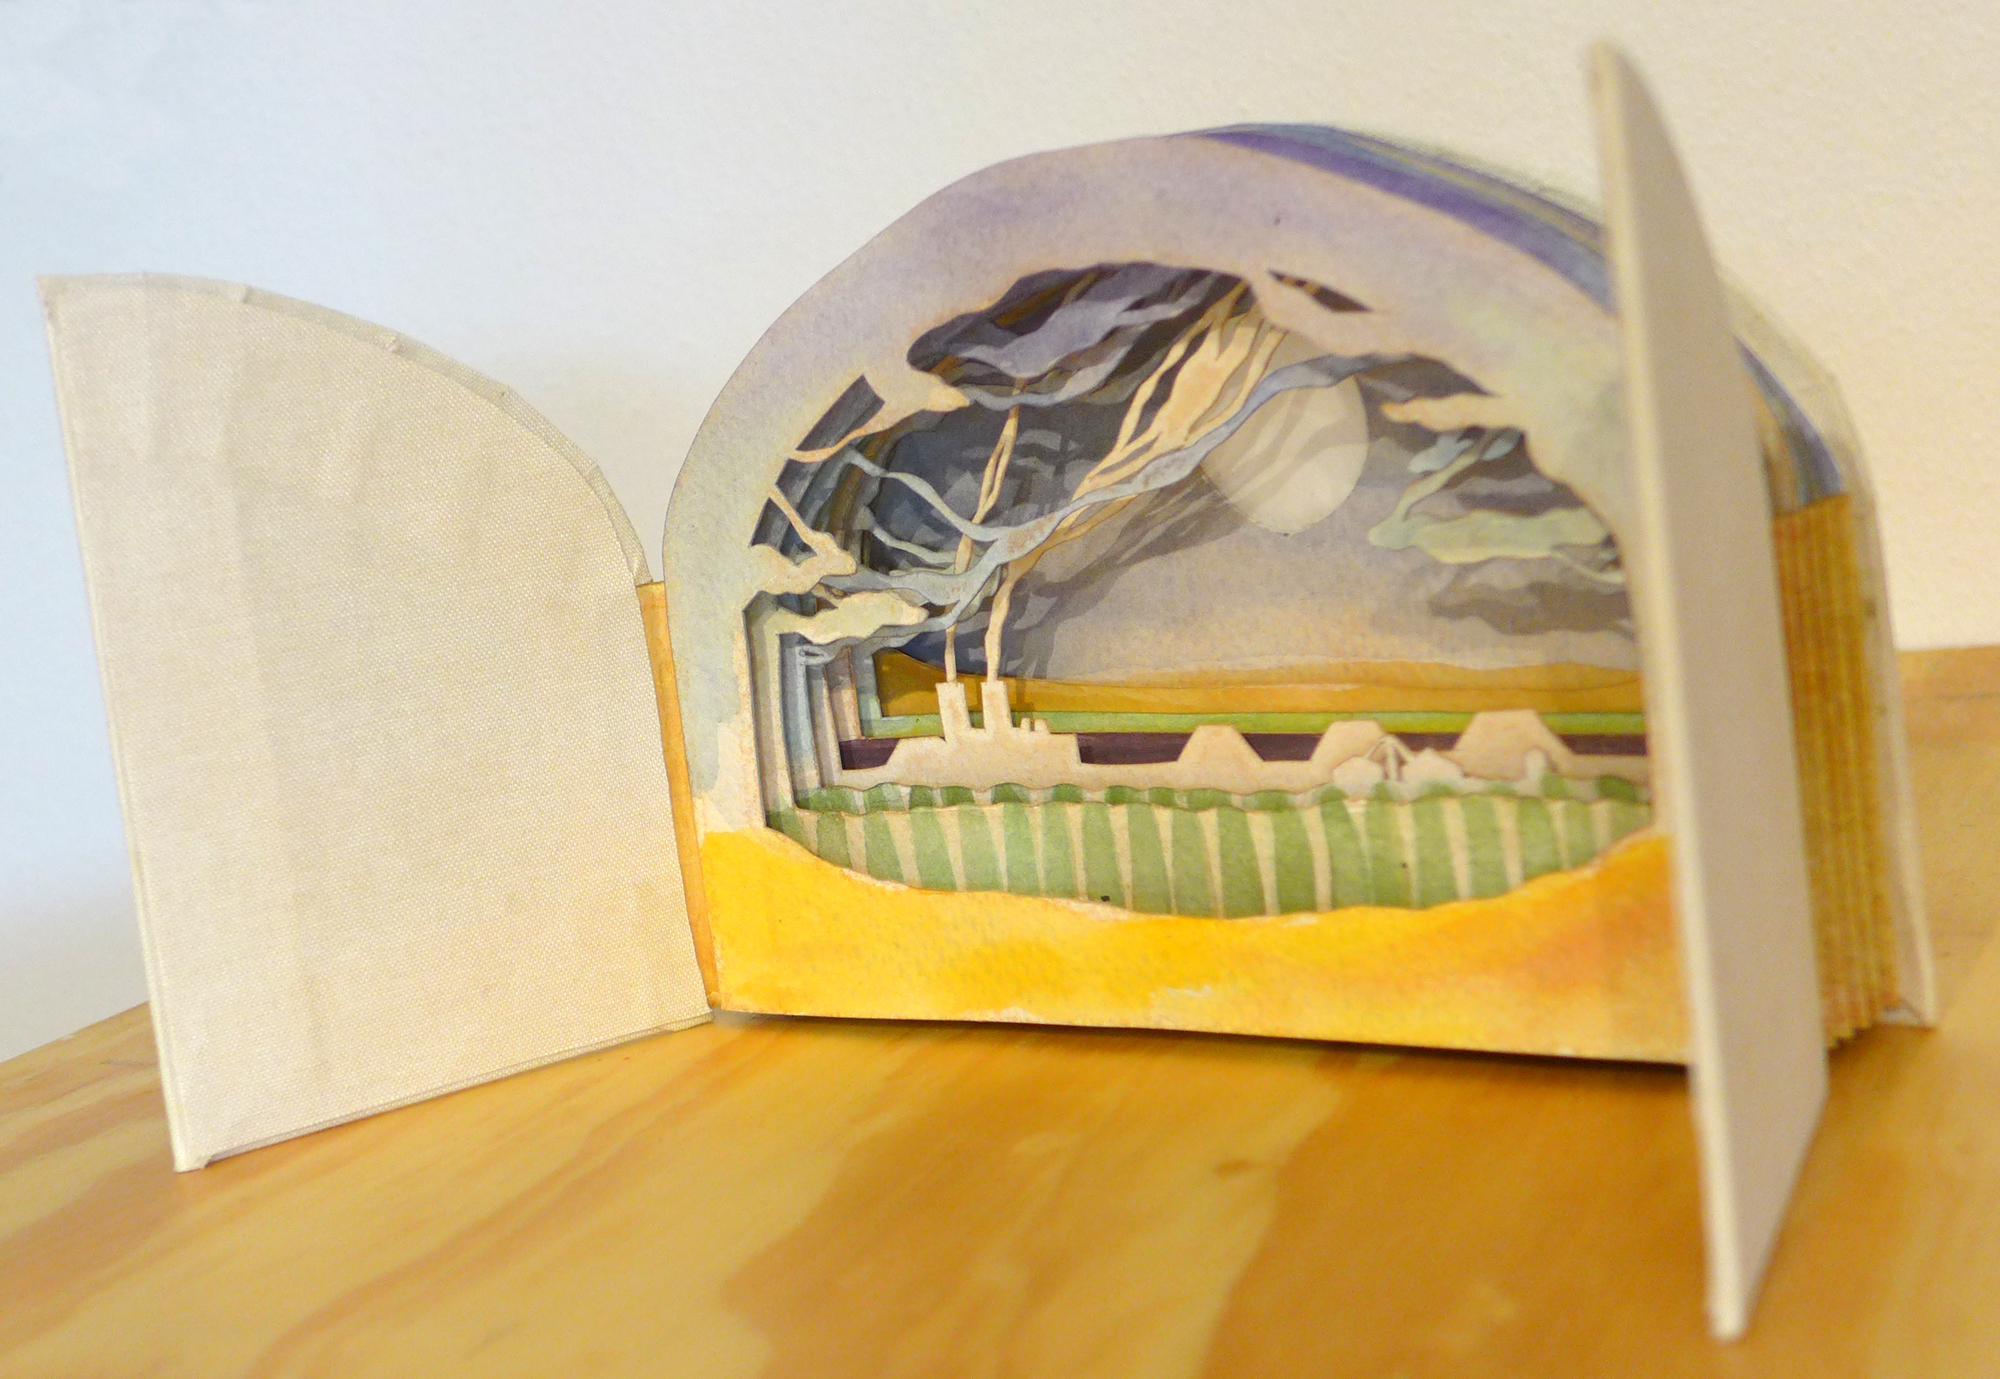 Tunnel book, Liz Kozik, Spring 2015